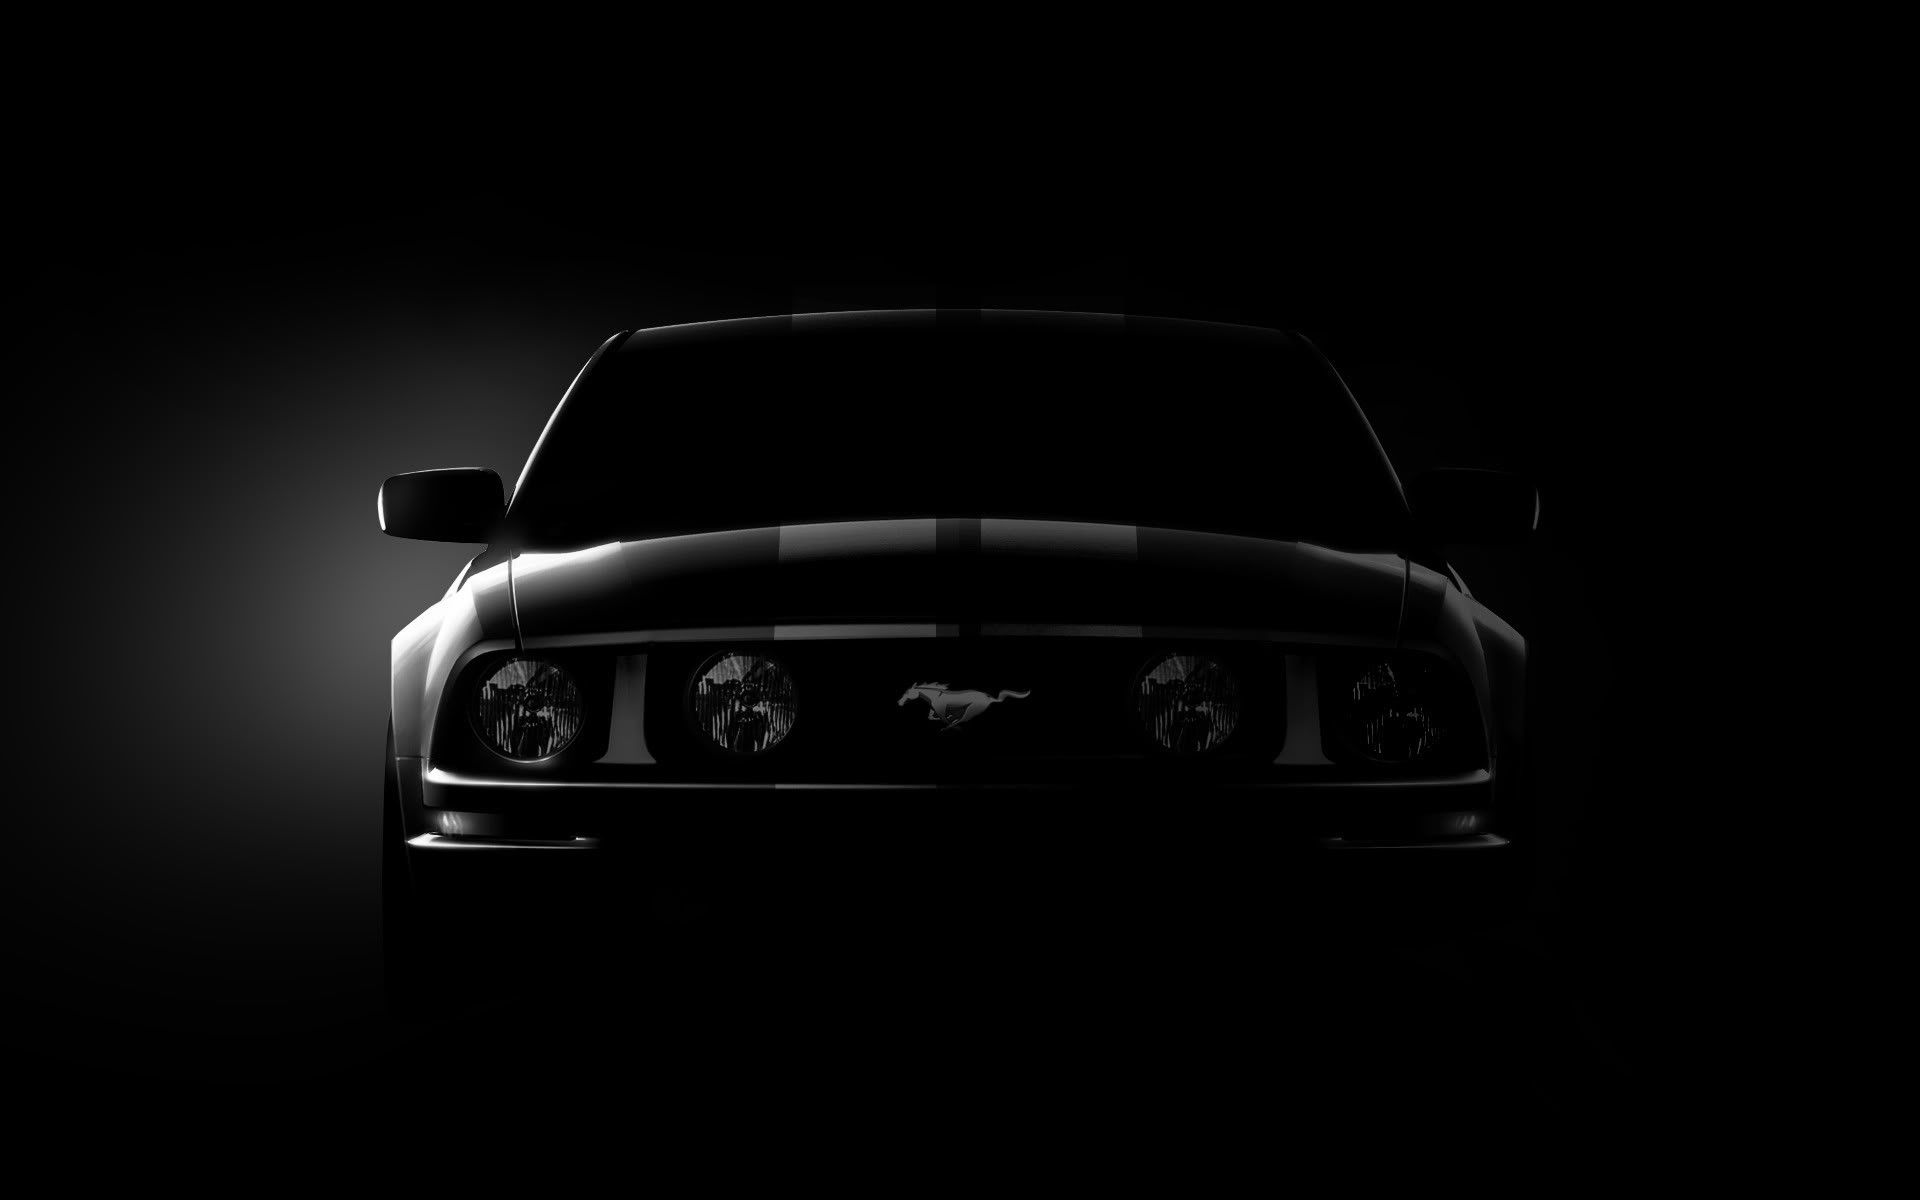 Black Car Wallpaper 75 Pictures Ford Mustang Wallpaper Ford Mustang Gt Ford Mustang